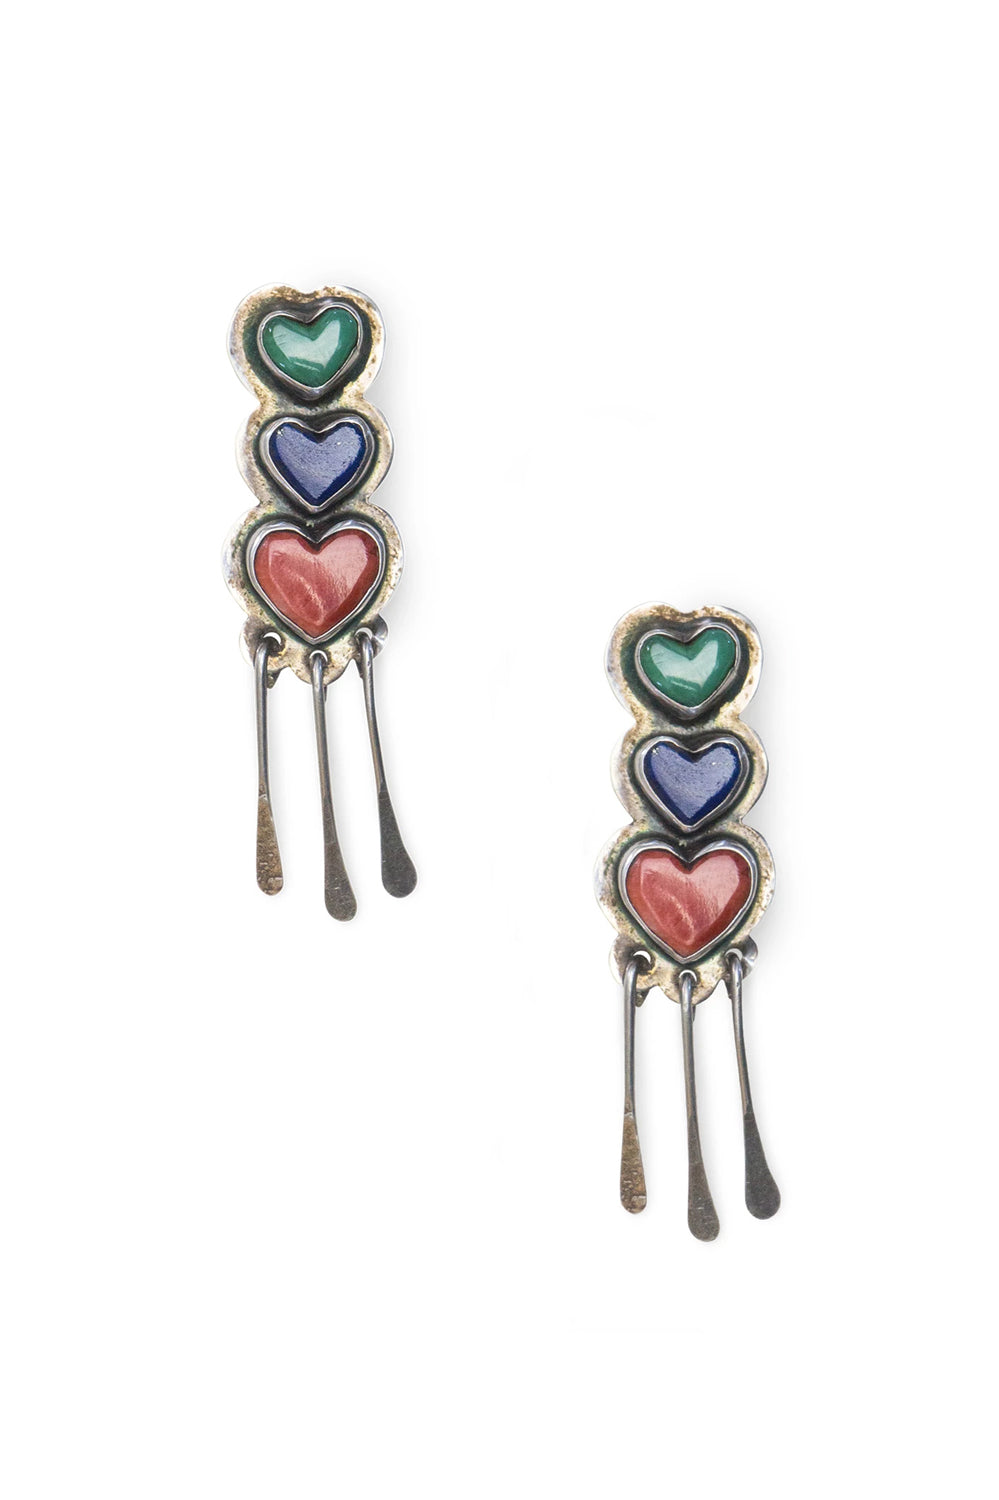 Earrings, Chandelier, Hearts Turquoise, Lapis, Spiny Oyster, Hallmark, Vintage, 504